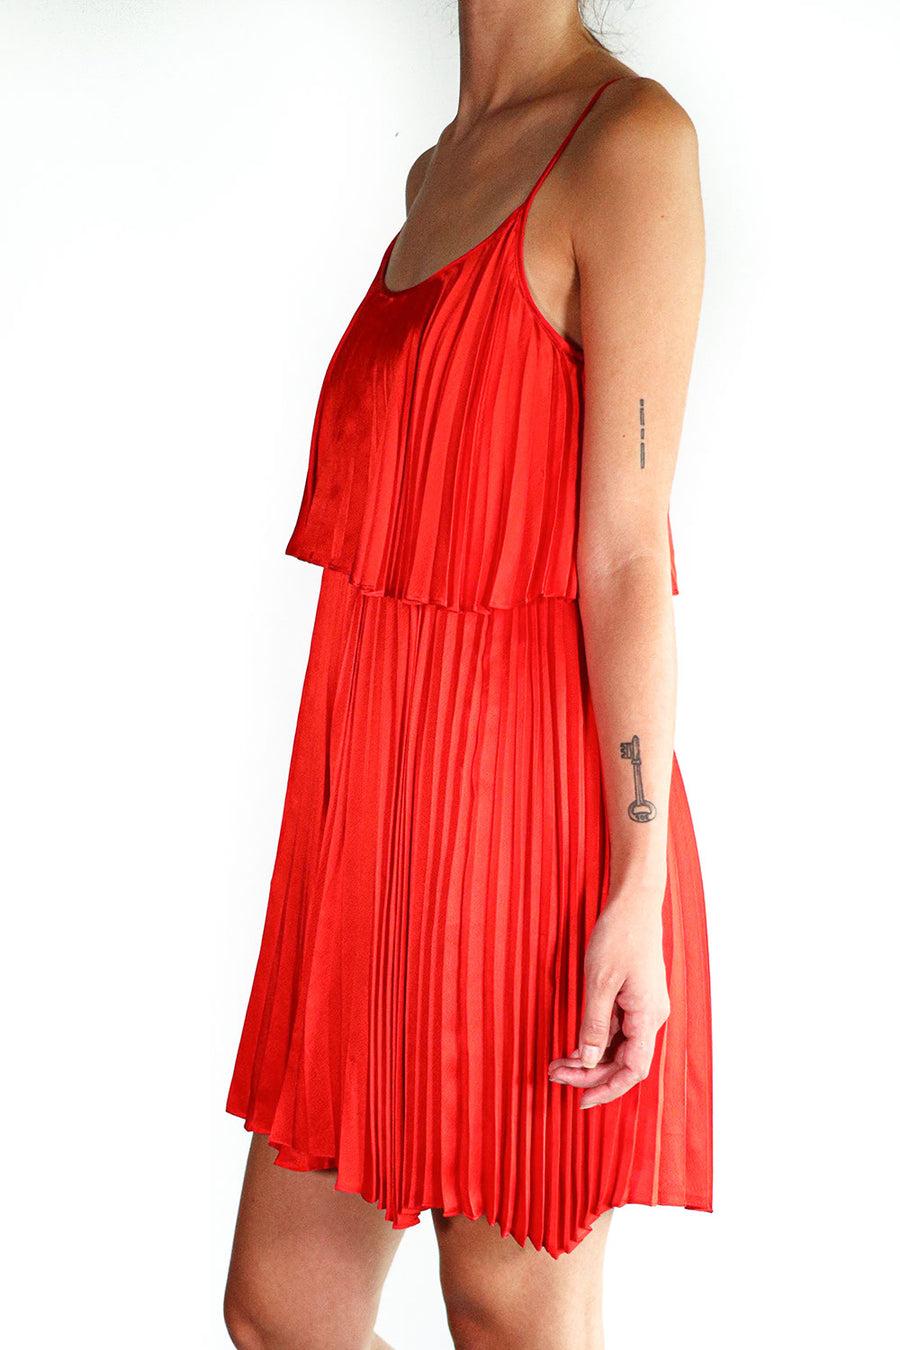 Halston Heritage - Accordion Dress - 0